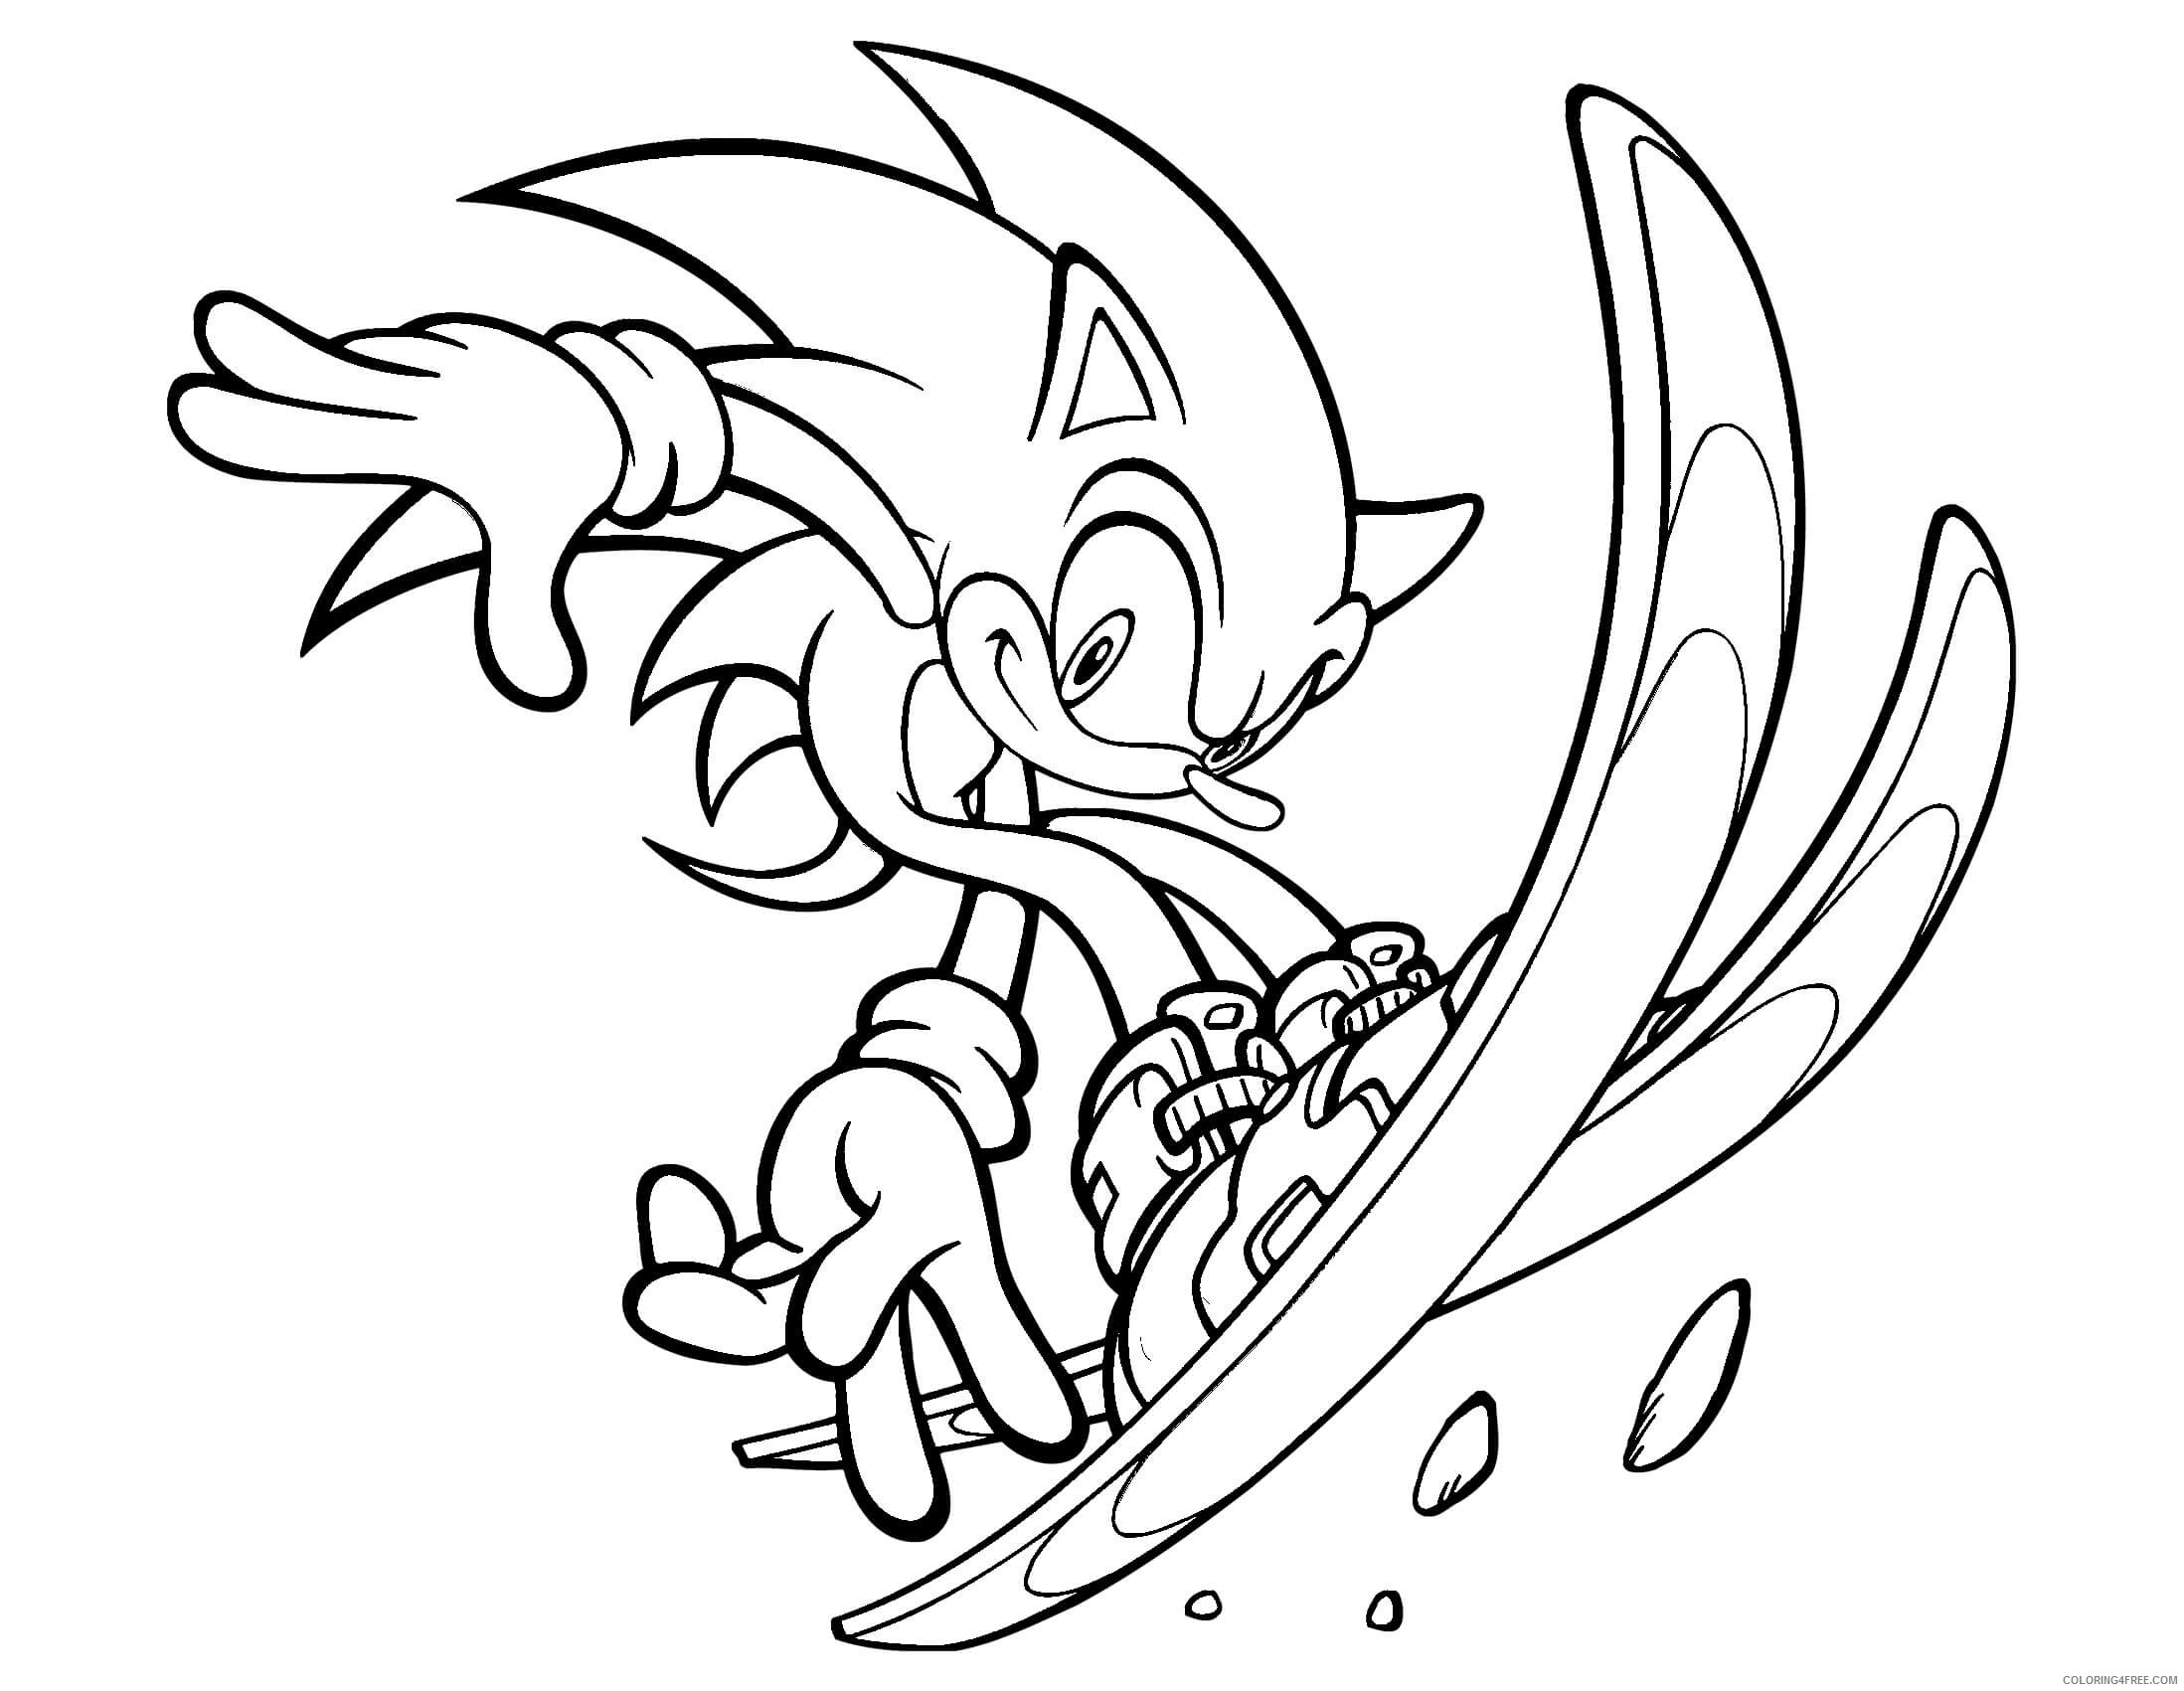 Sonic Silver Shadow Coloring Pages Coloring4free Coloring4free Com